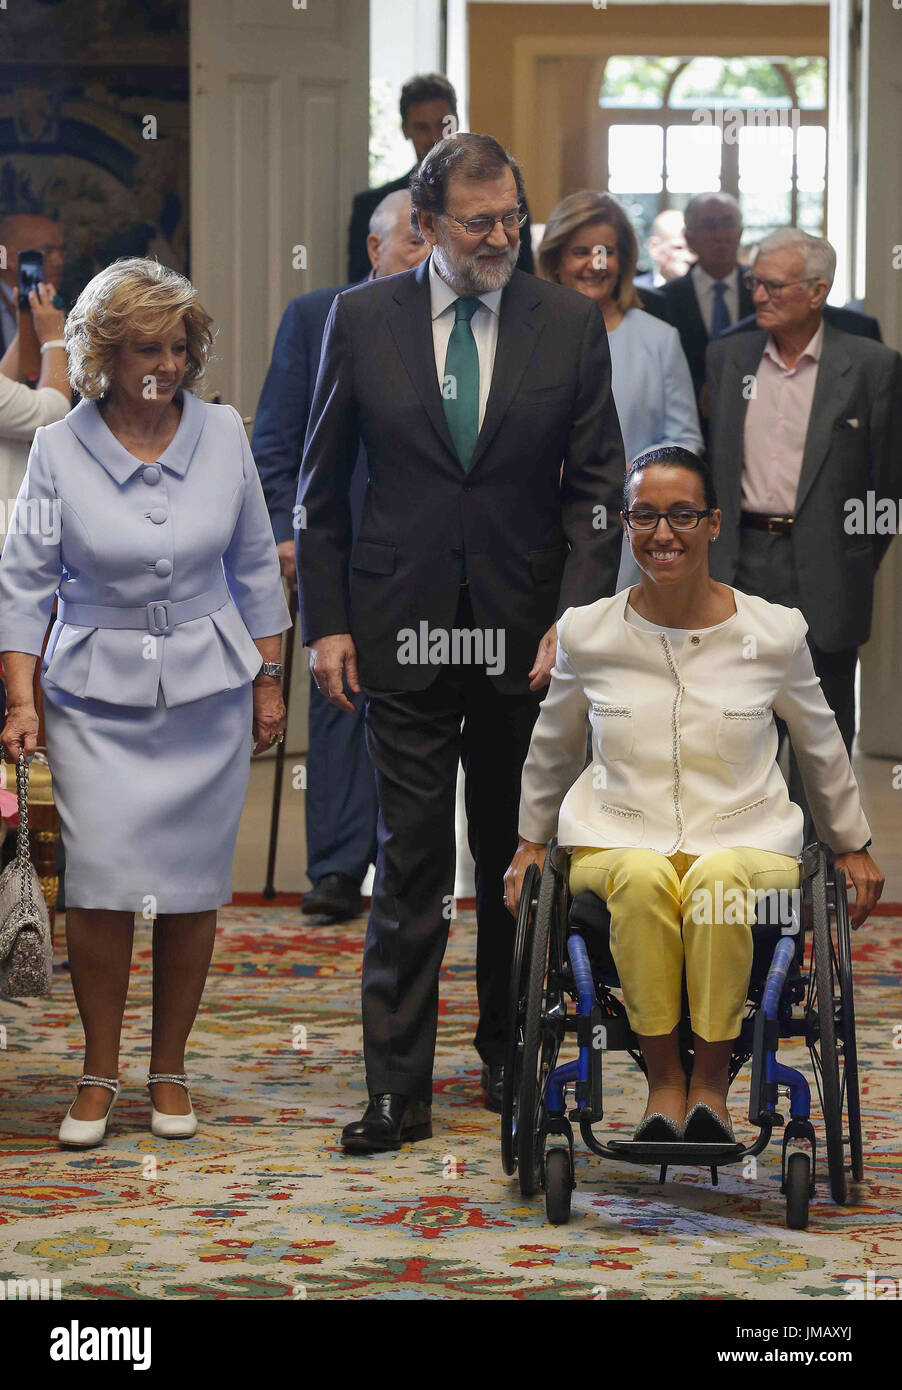 Madrid, Spain. 27th July, 2017. Spanish Prime Minister, Mariano Rajoy (C), greets laureates Spanish journalist Teresa Campos (L) and paralympic swimmer Teresa Perales prior to the start of the Gold Medal of Merit in Work handover ceremony held at the Palace of la Moncloa in Madrid, Spain, 27 July 2017. EFE/Paco Campos Credit: EFE News Agency/Alamy Live News - Stock Image